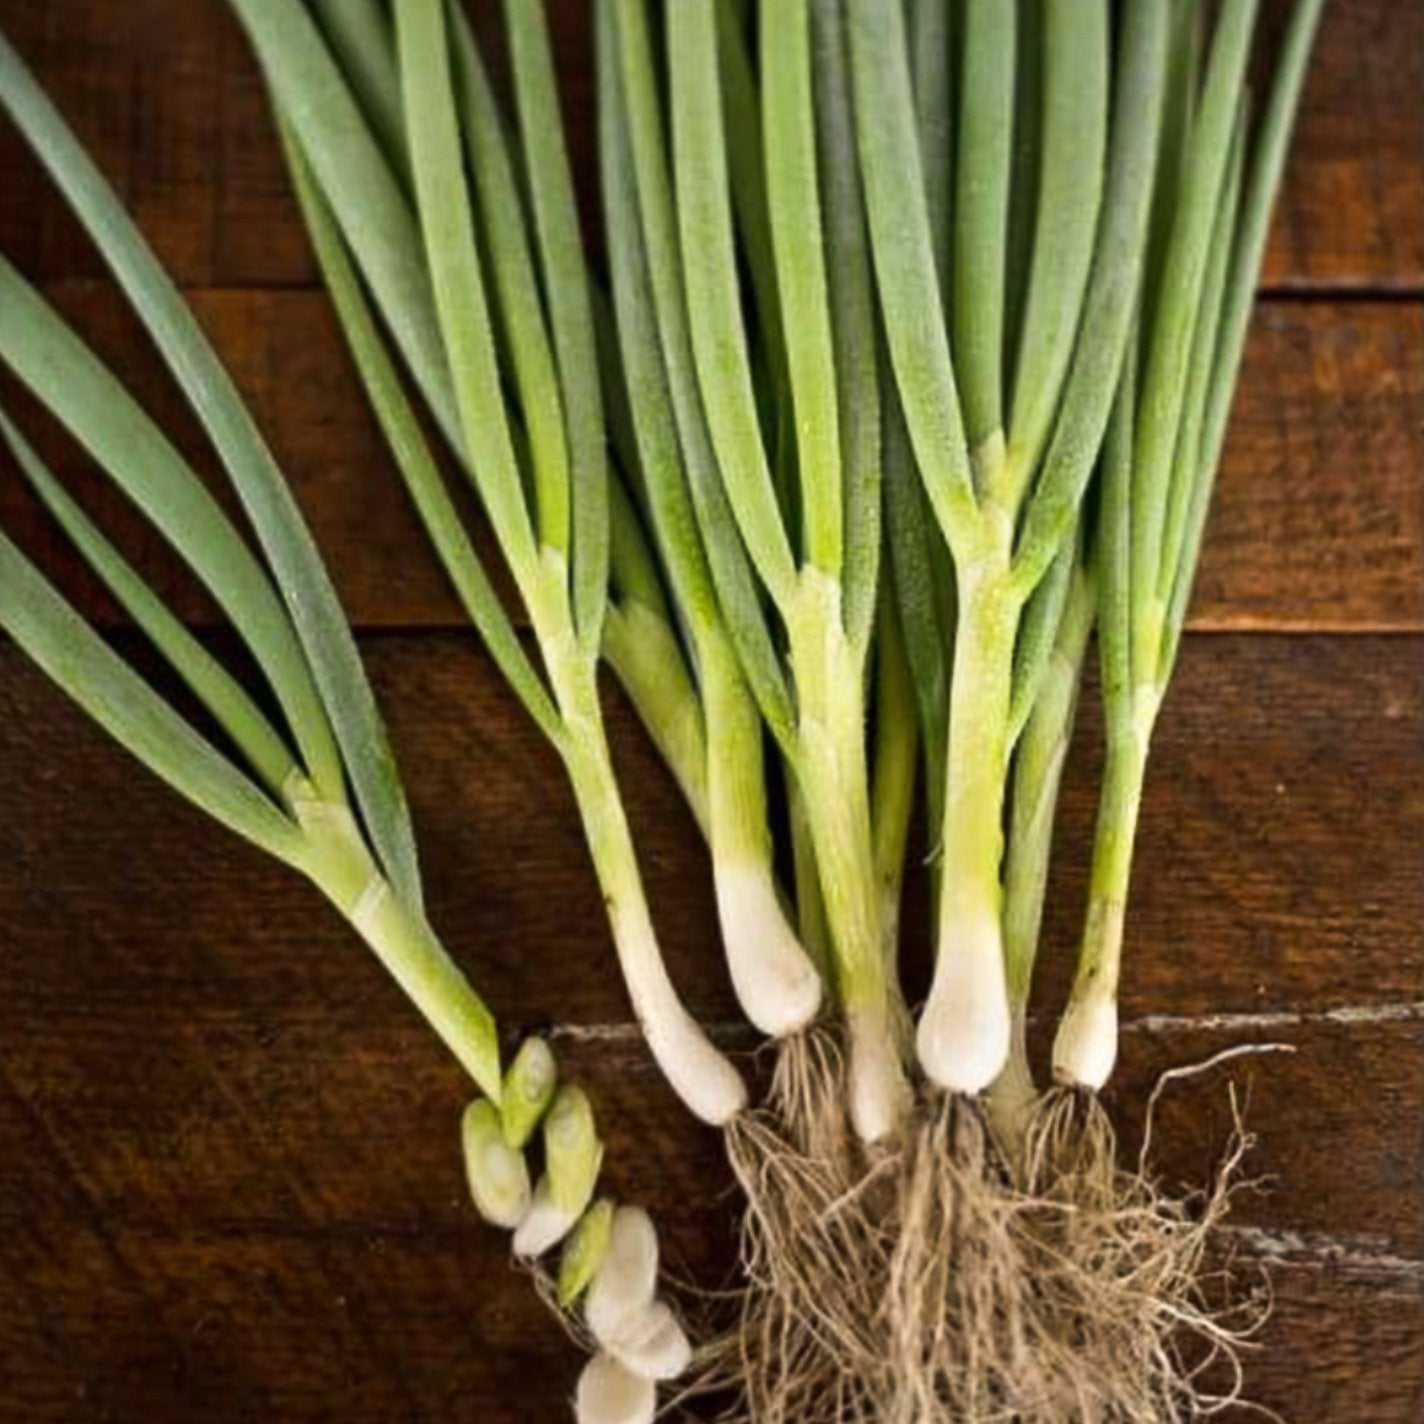 Warrior Bunching Onion (60 days) - Vegetables